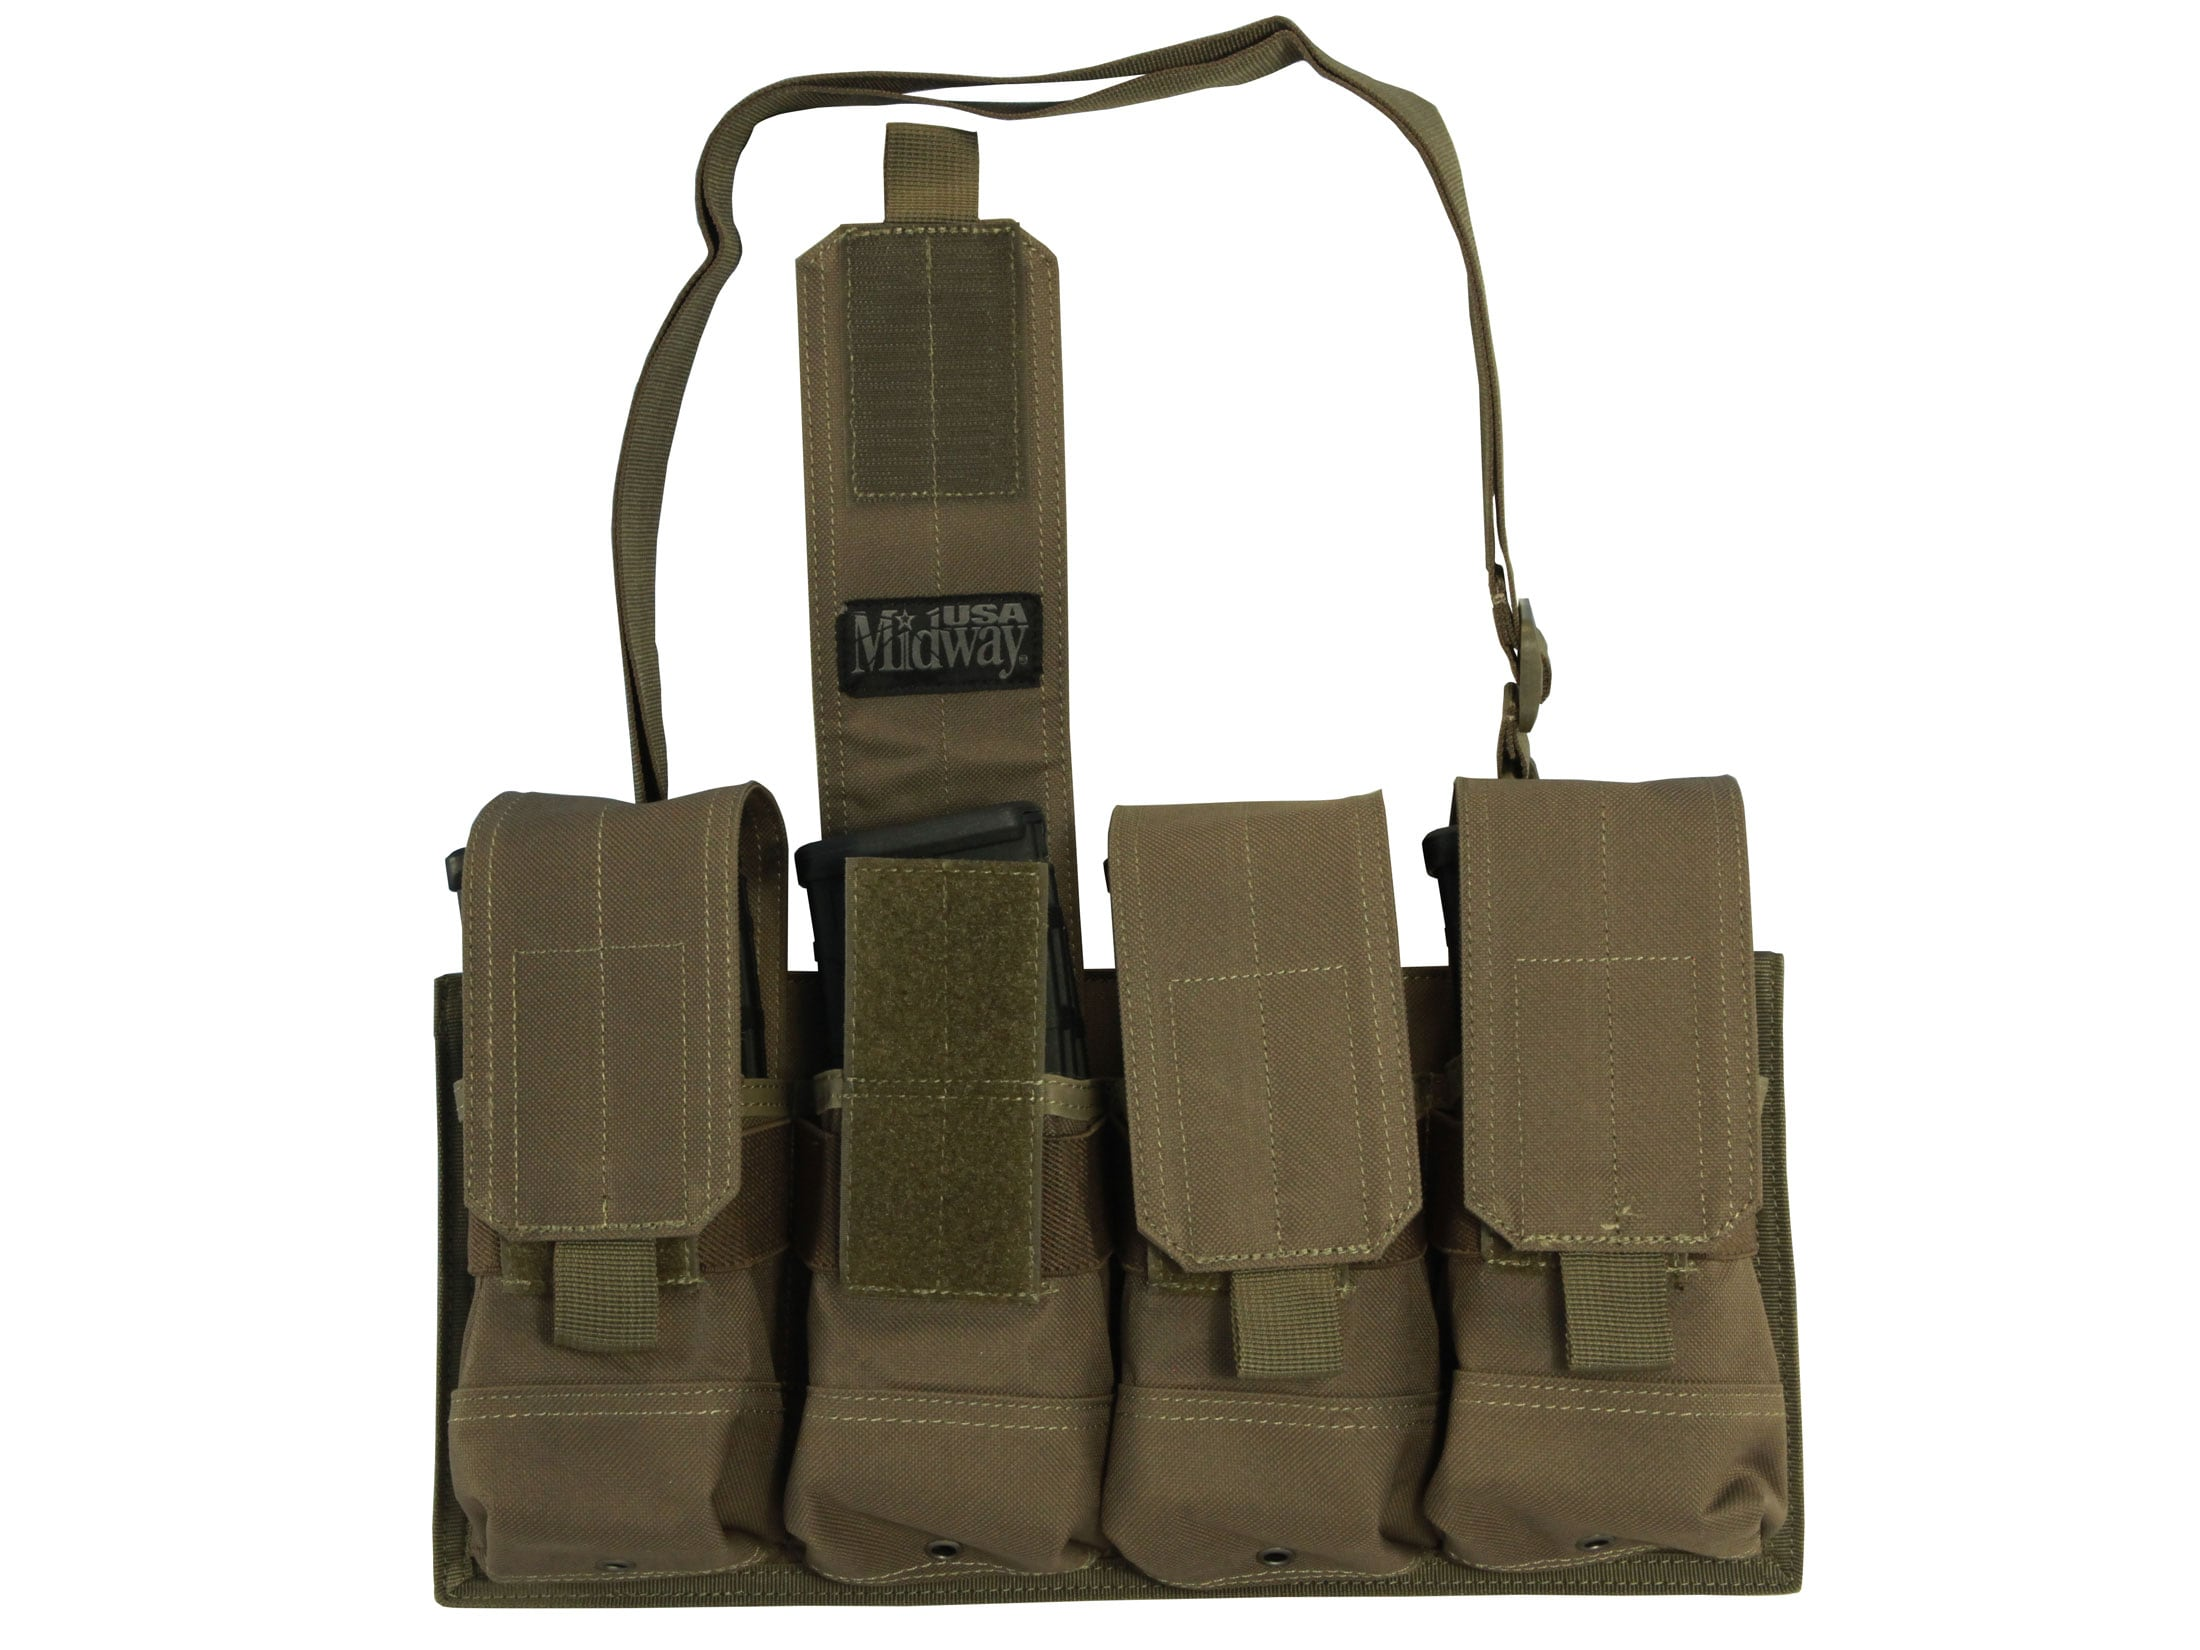 Ace Case 8 Pack Magazine Pouch for 30 Rd 9mm Mags w// Adjustable Shoulder Strap